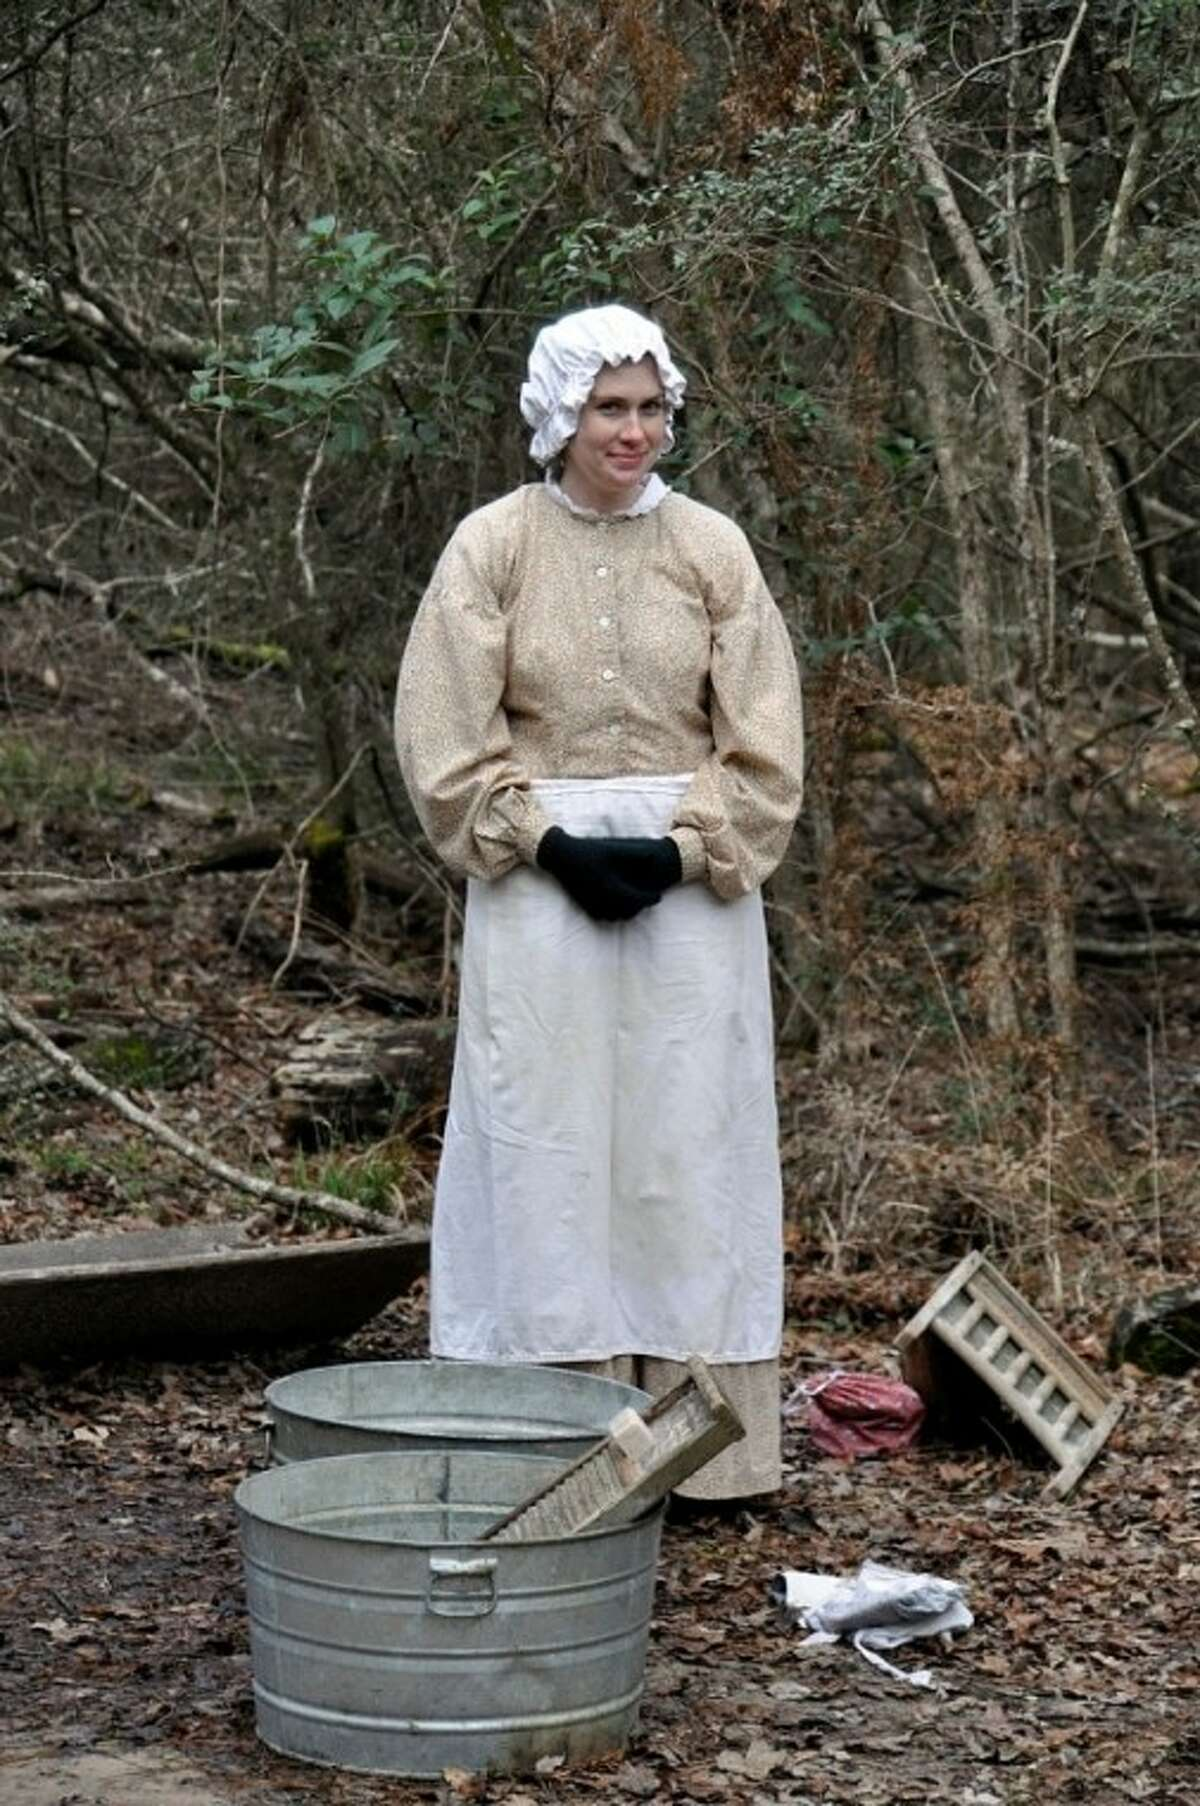 Jones Park Volunteer Brittany Ann Brownlow demonstrates how clothes were washed during Homestead Heritage Day 2010.